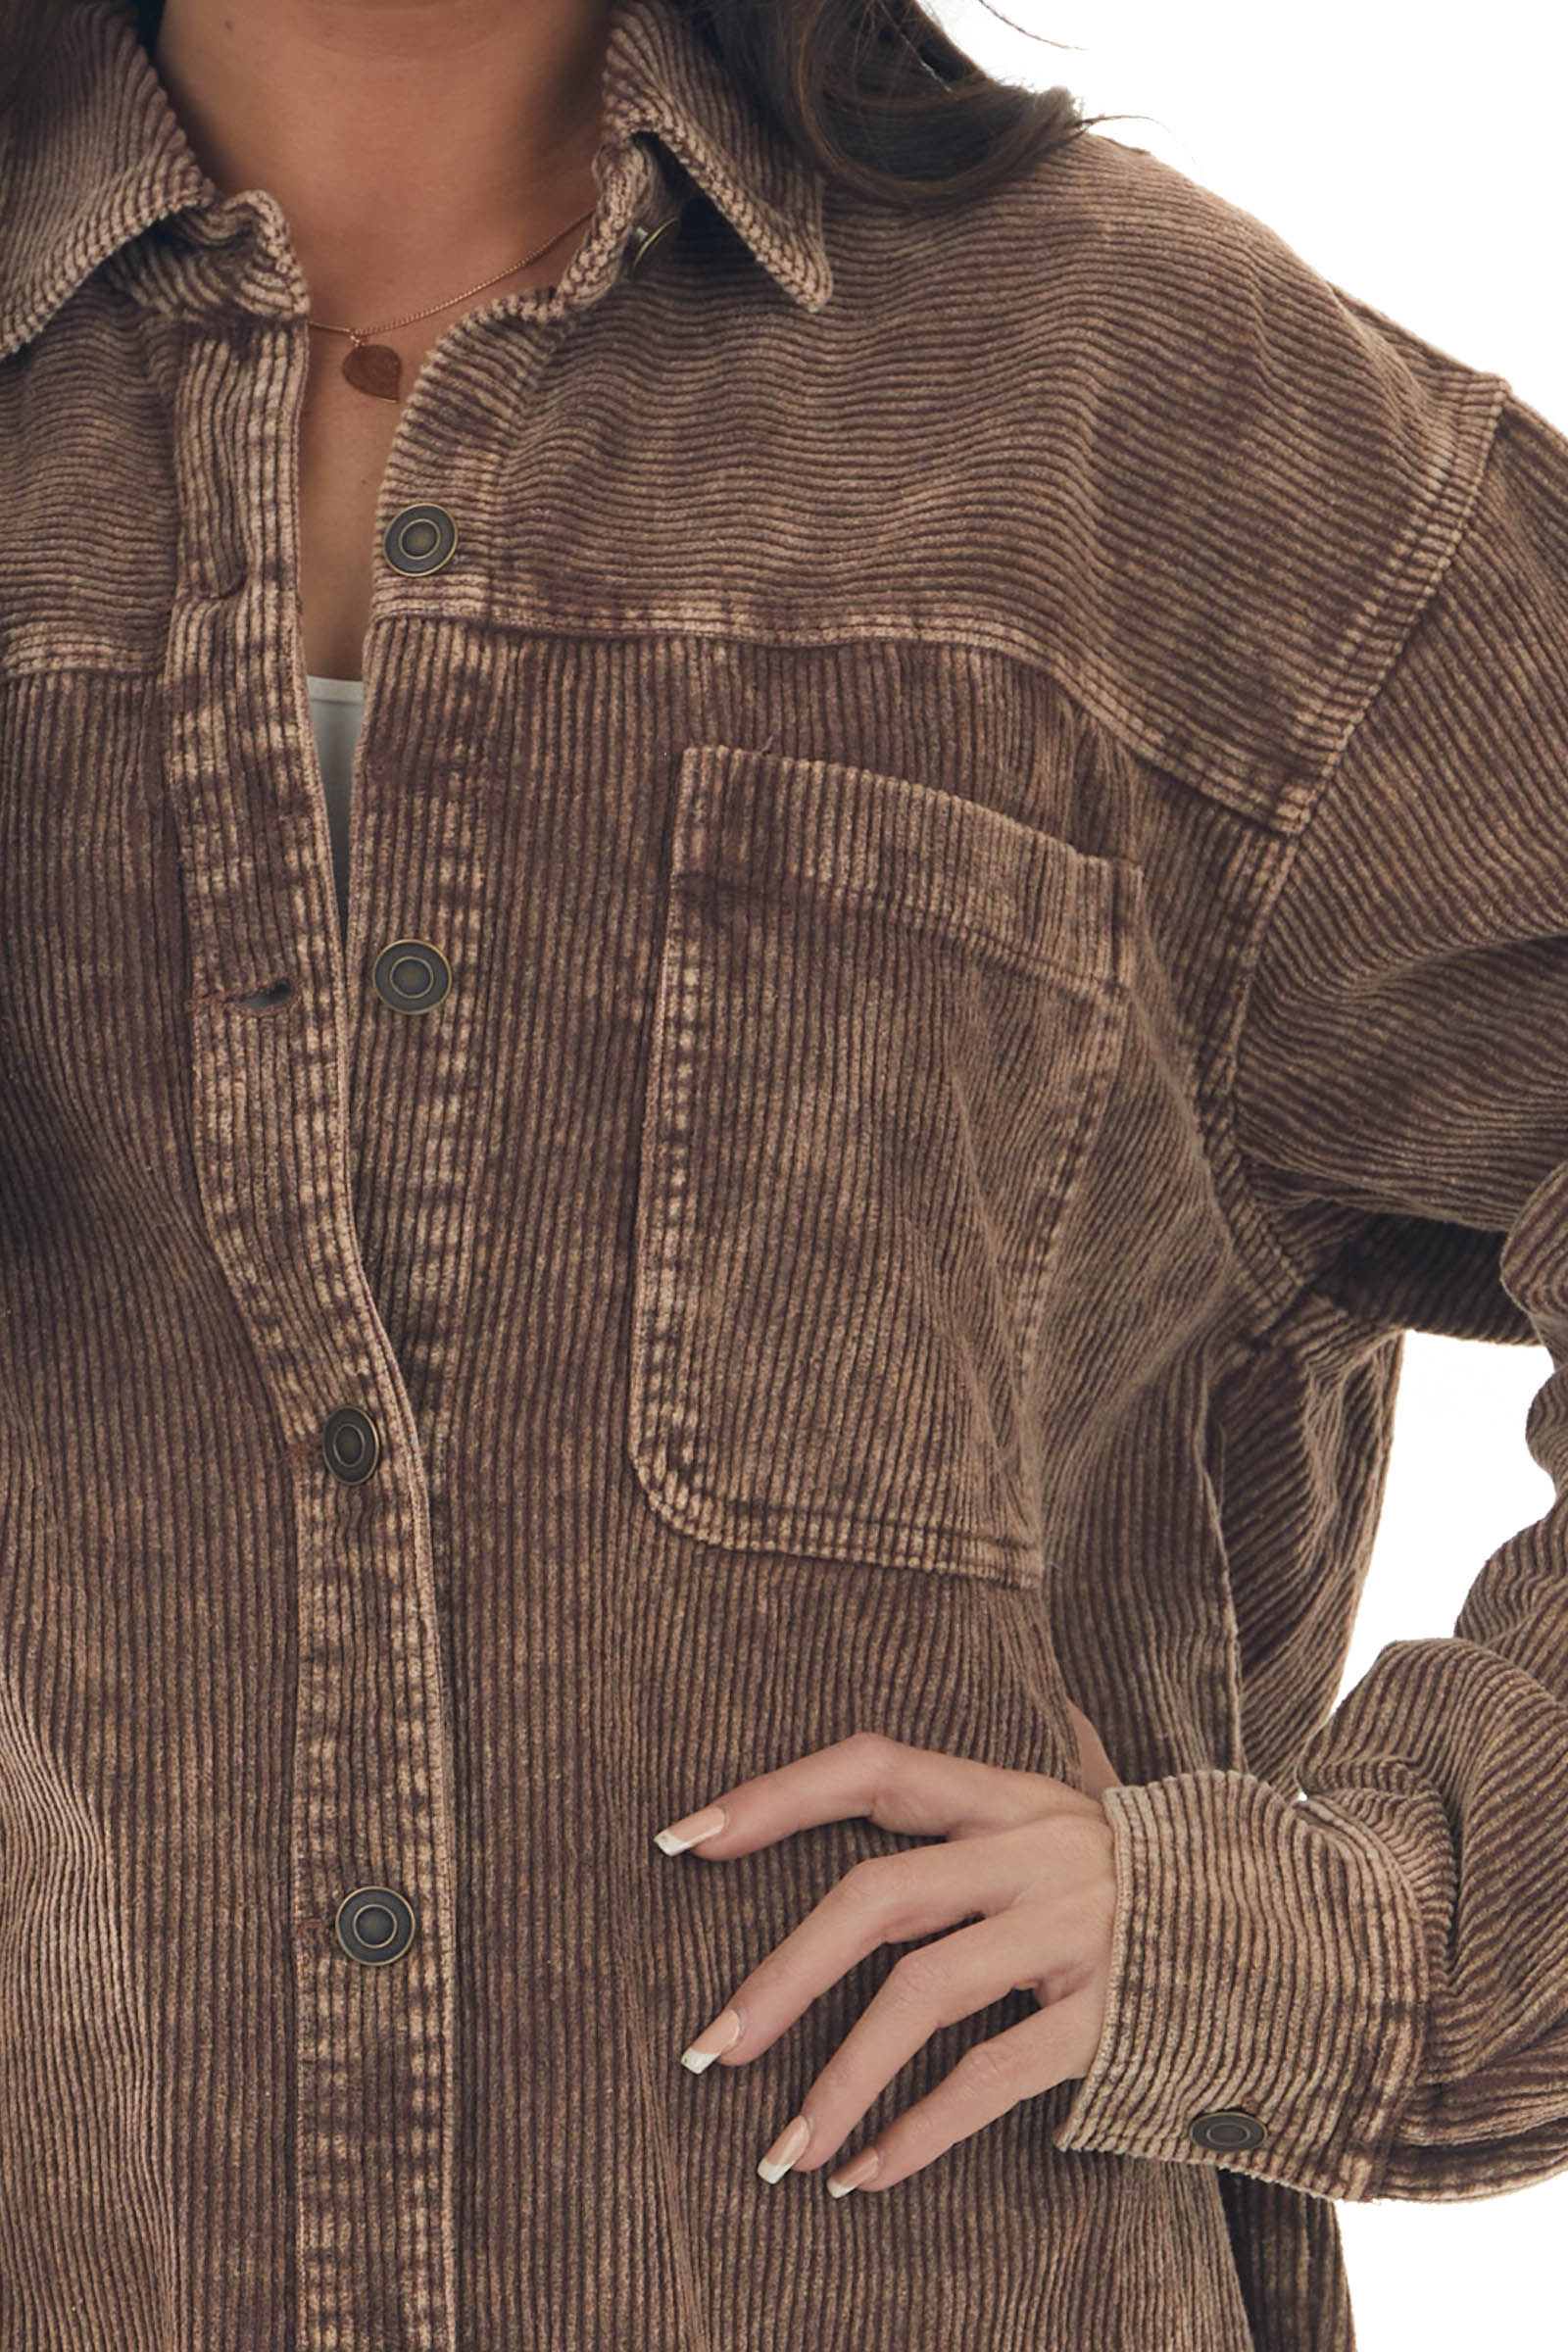 Sepia Washed Corduroy Button Up Shacket